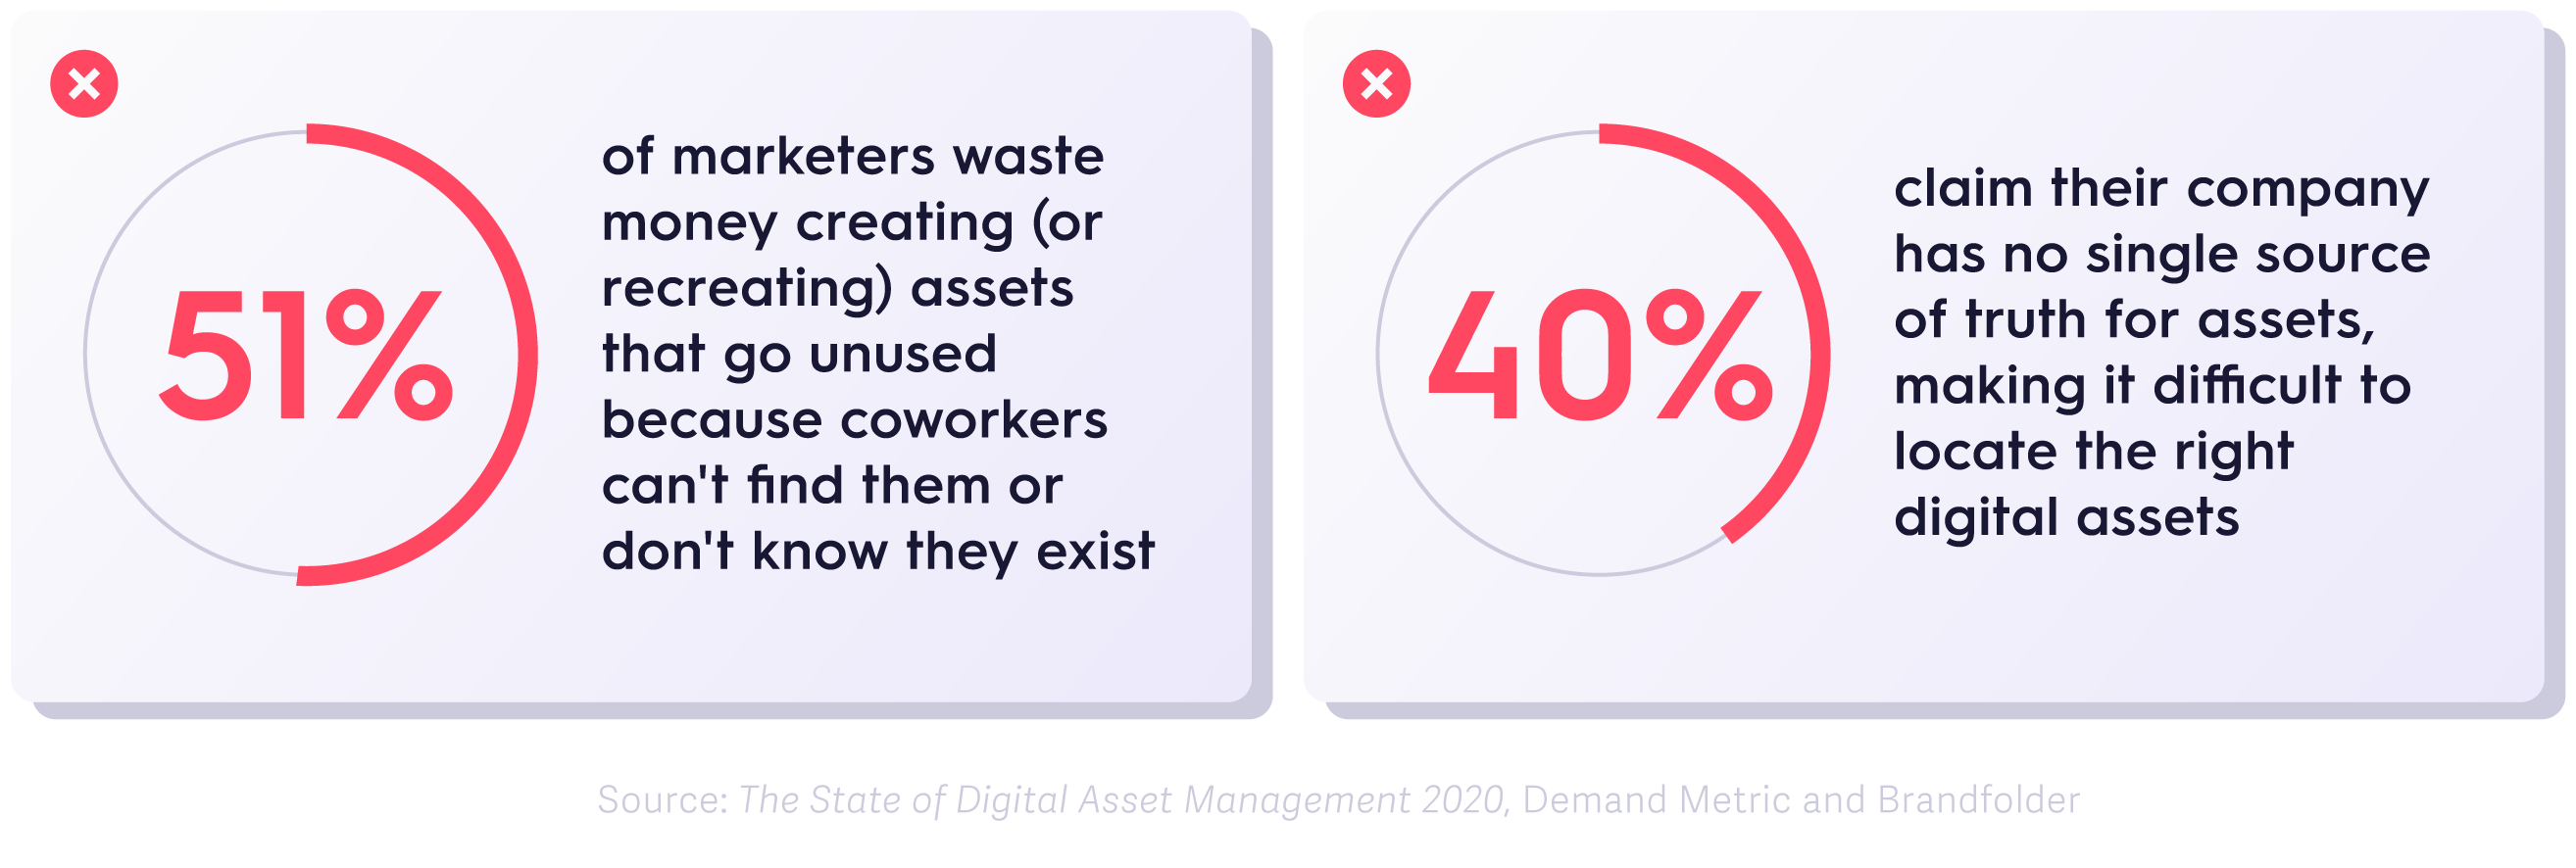 state of digital asset management report infographic.png